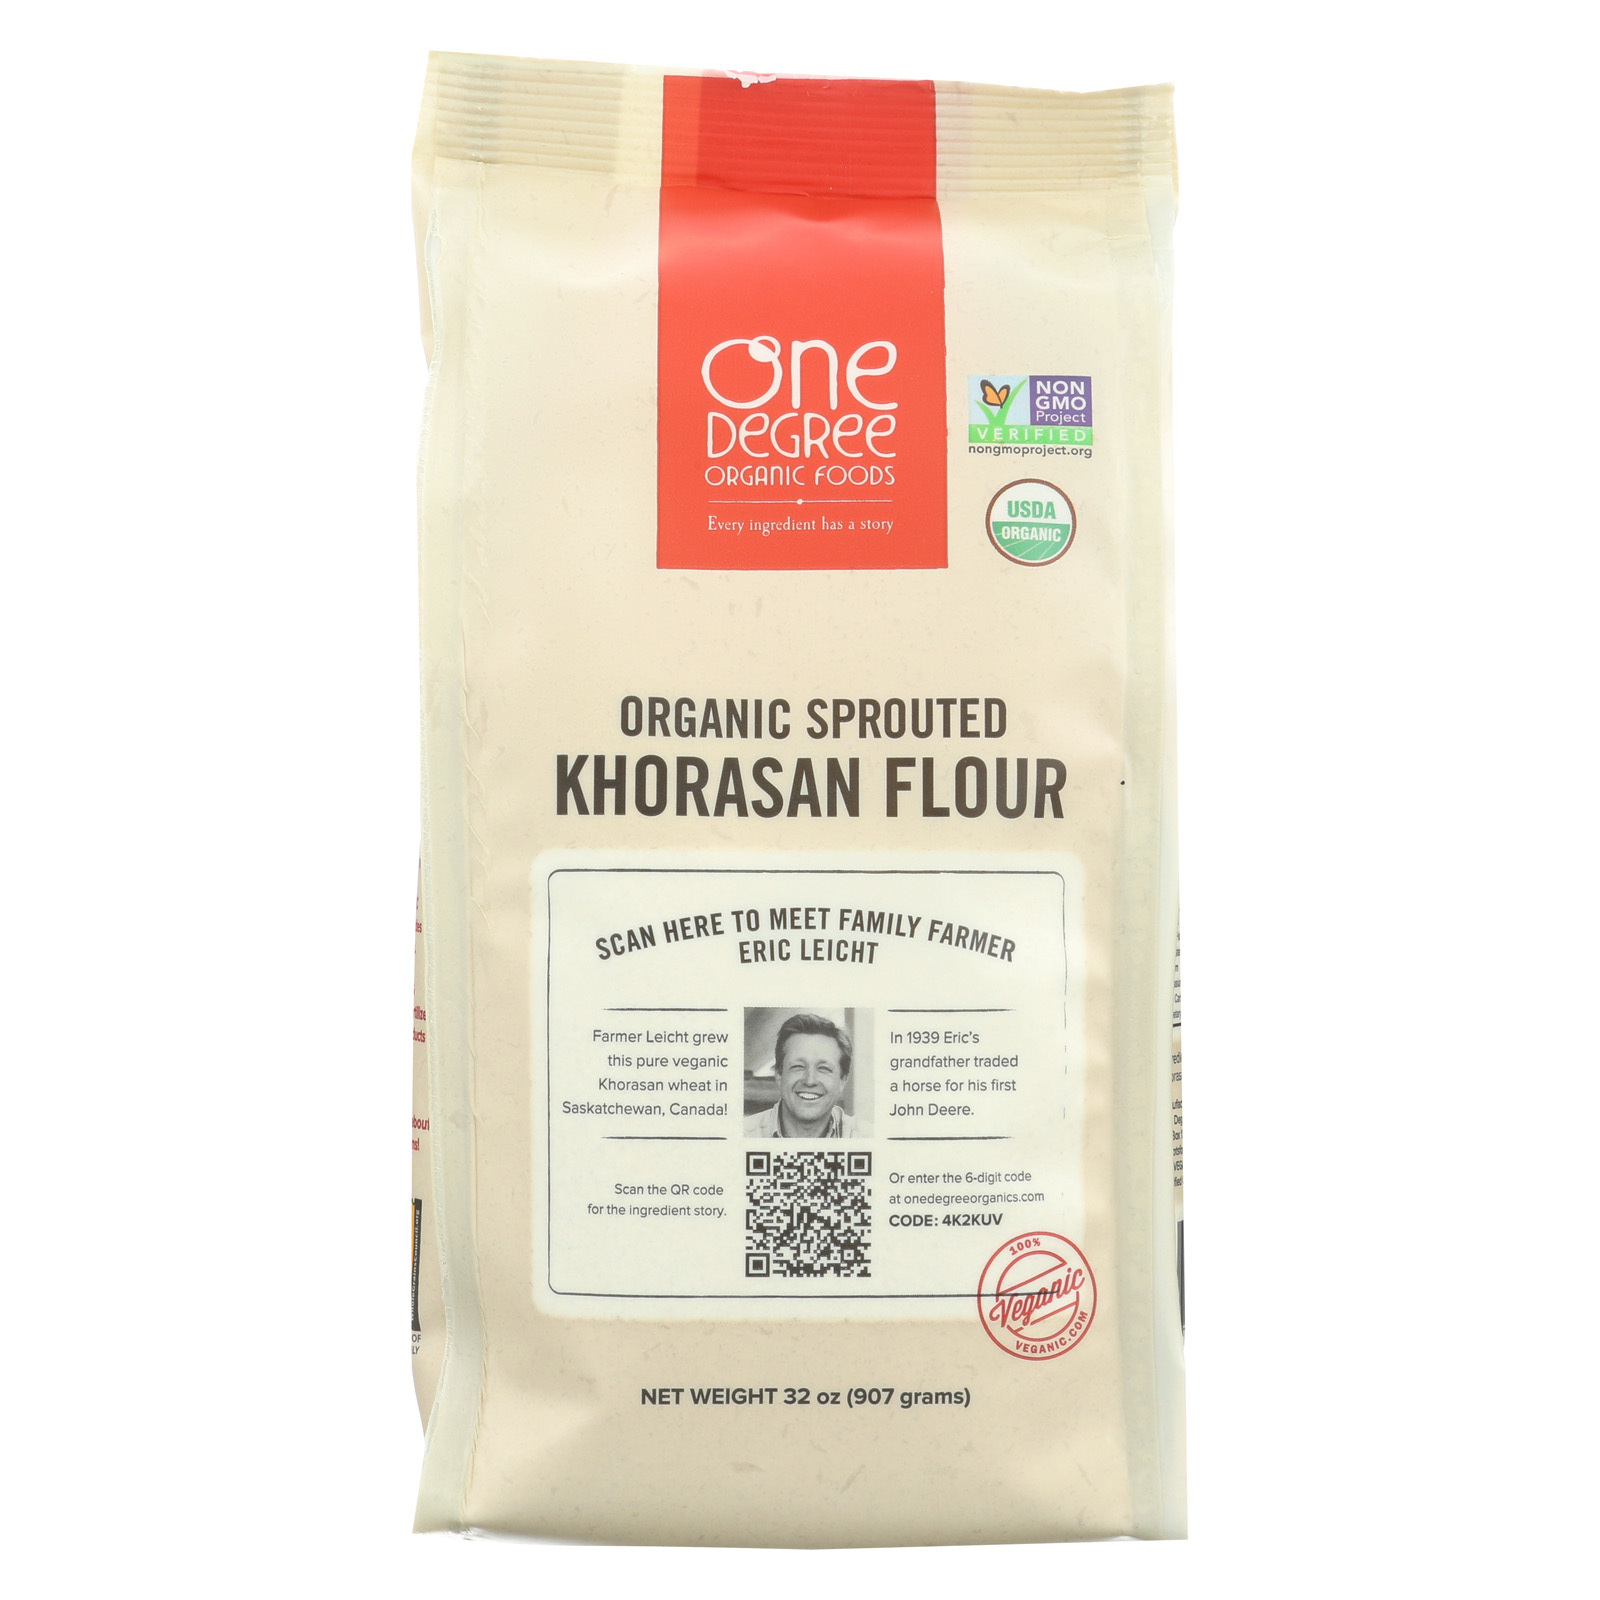 One Degree Organic Foods Sprouted Khorasan Flour - Organic - Case of 6 - 32 oz.